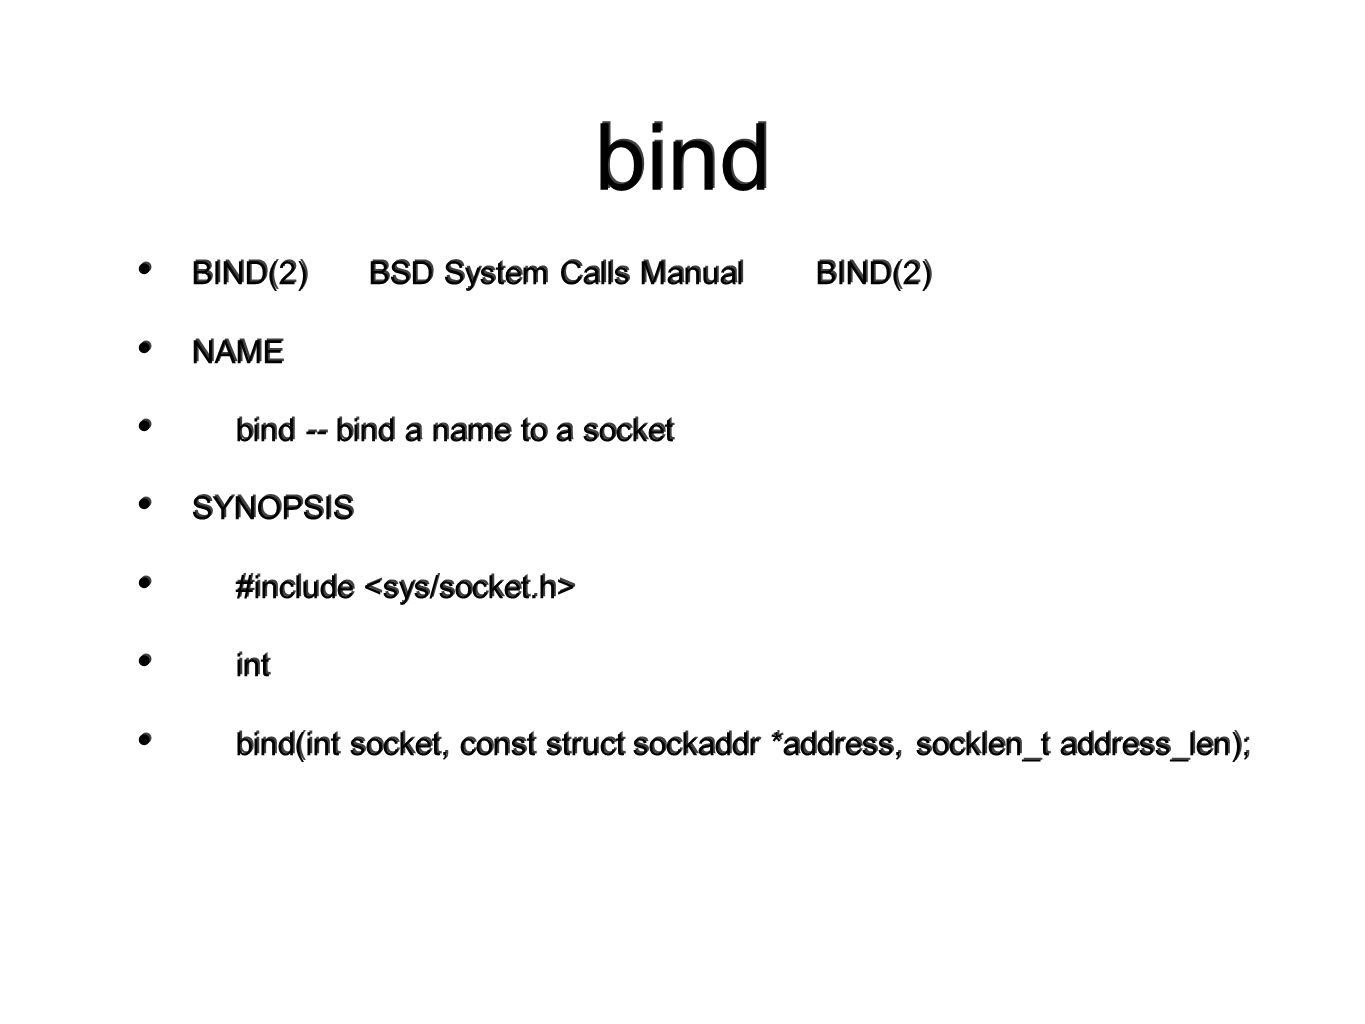 bind BIND(2) BSD System Calls Manual BIND(2) NAME bind -- bind a name to a socket SYNOPSIS #include int bind(int socket, const struct sockaddr *address, socklen_t address_len); BIND(2) BSD System Calls Manual BIND(2) NAME bind -- bind a name to a socket SYNOPSIS #include int bind(int socket, const struct sockaddr *address, socklen_t address_len);